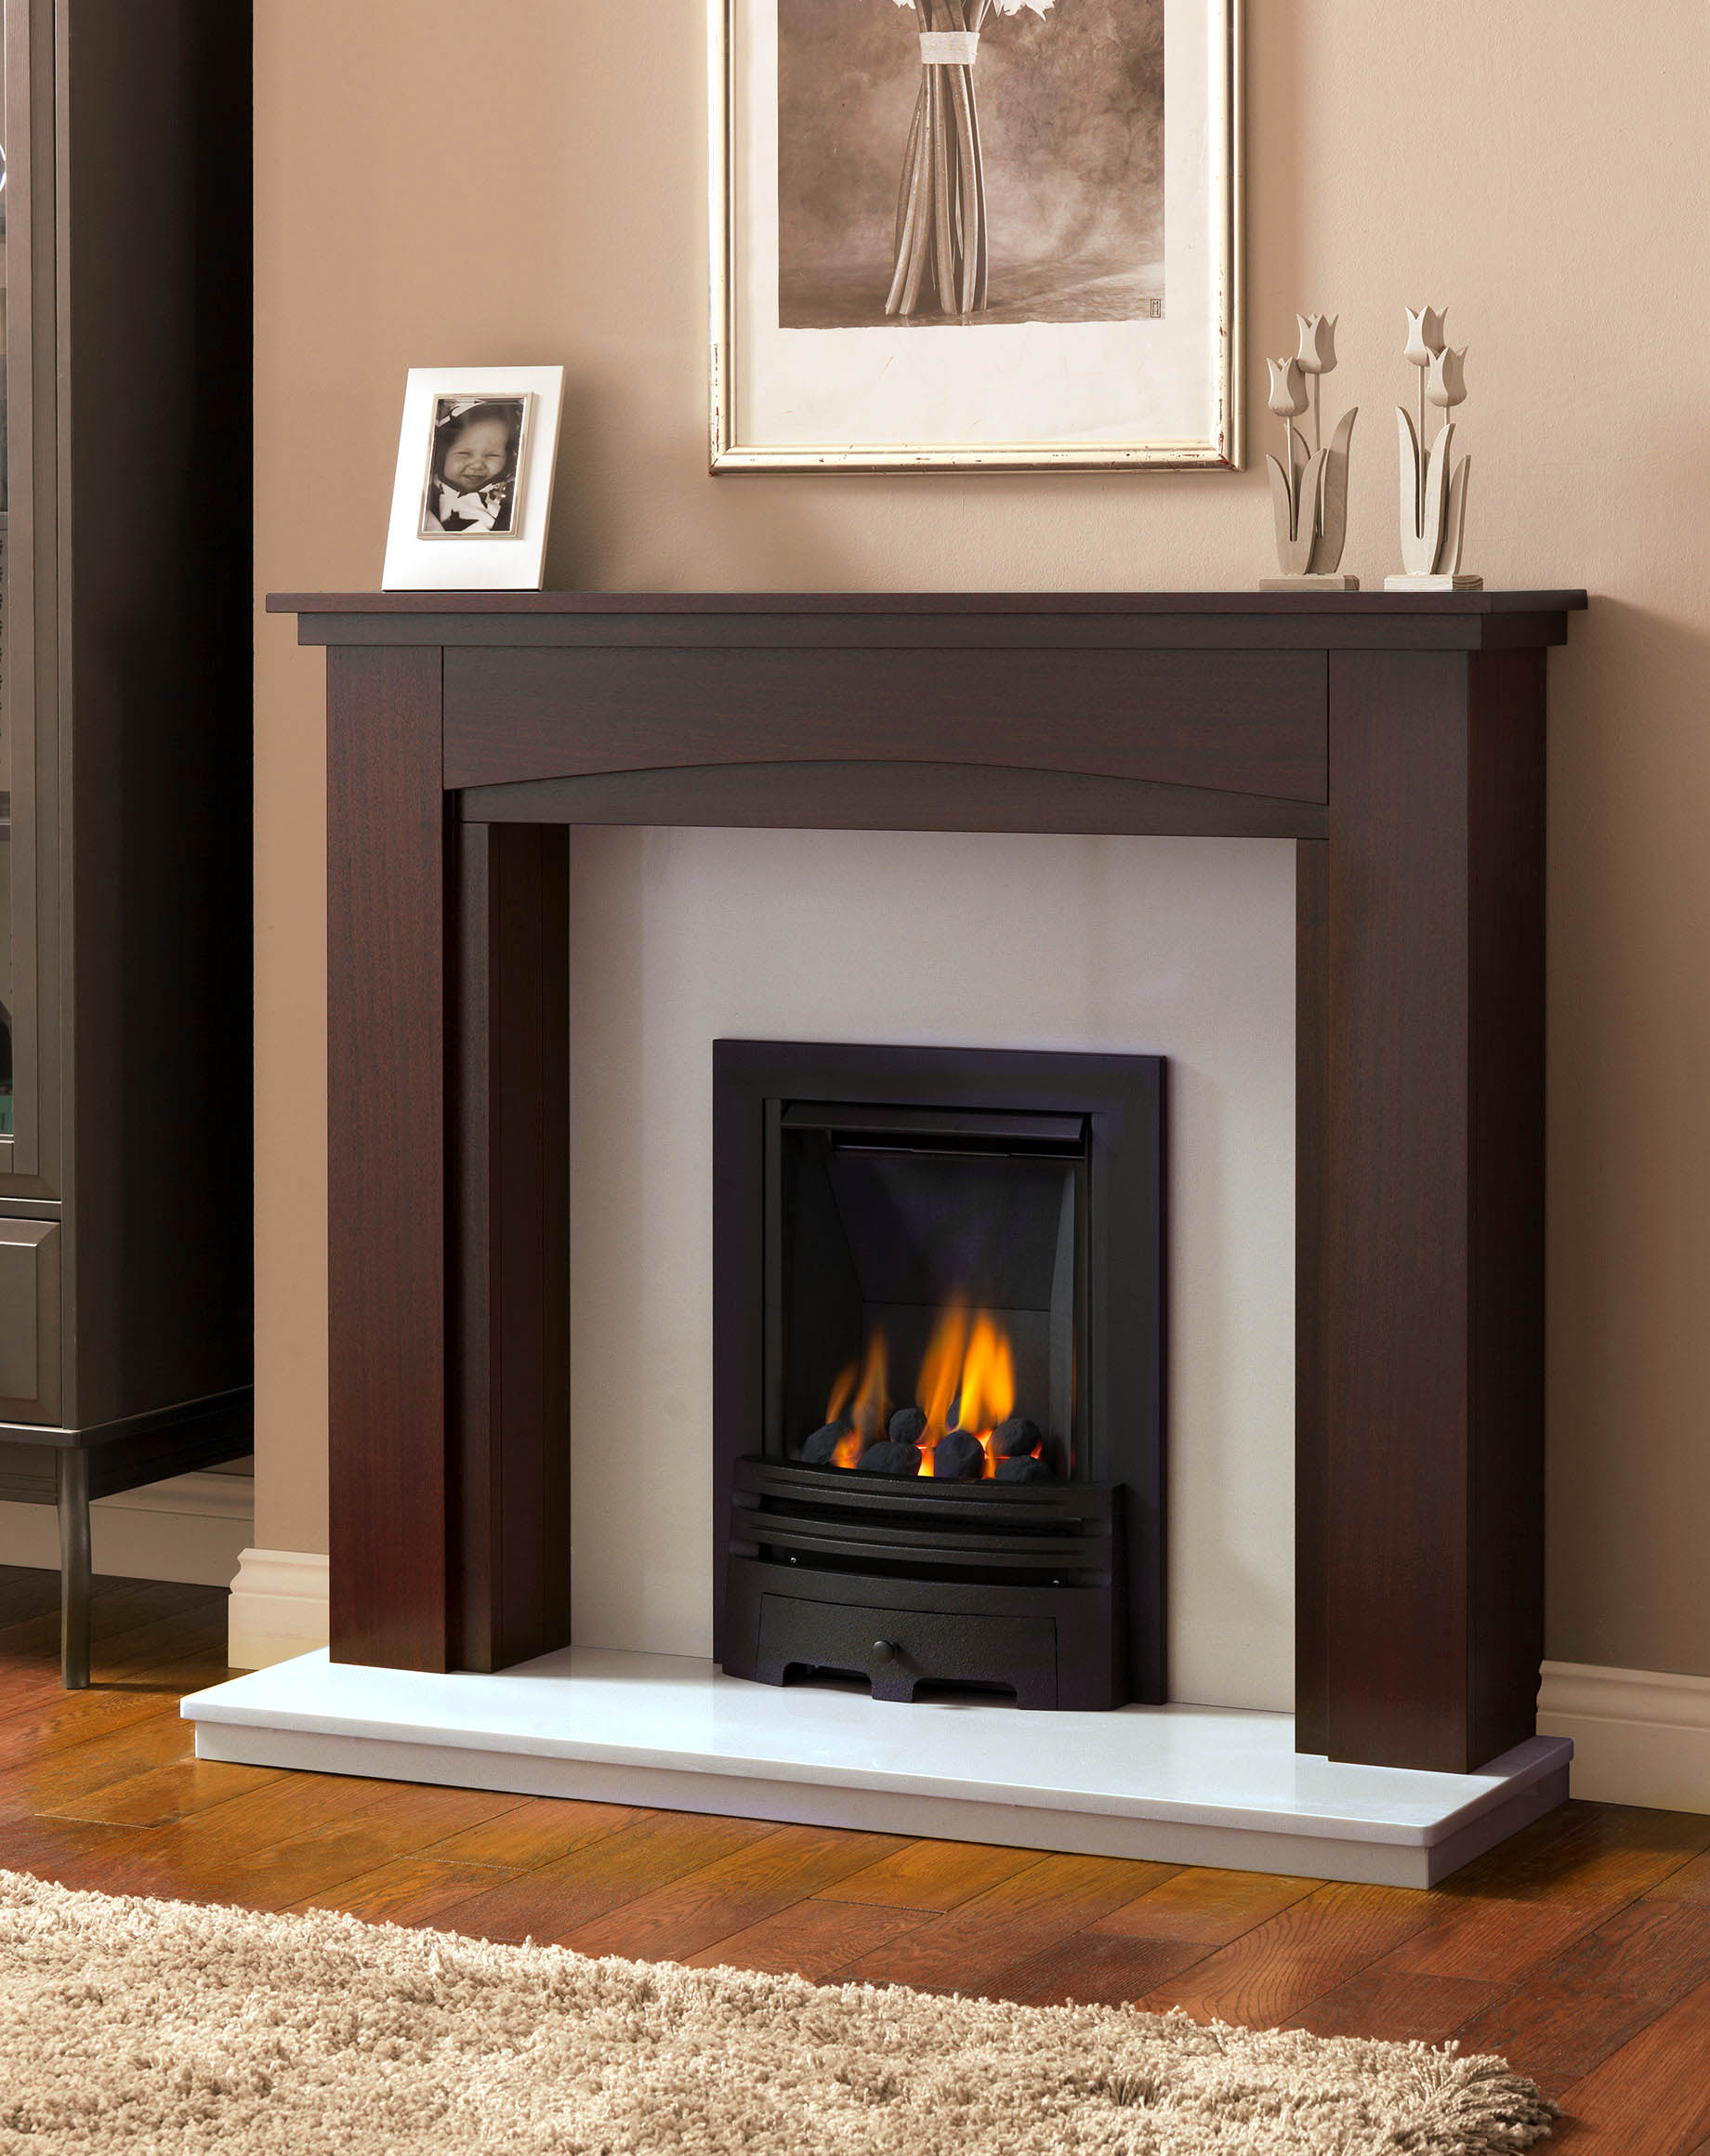 the windermere wooden fire surround fireplace surrounds rh firesandsurrounds co uk wooden fireplace surrounds for sale wooden fireplace surrounds northern ireland